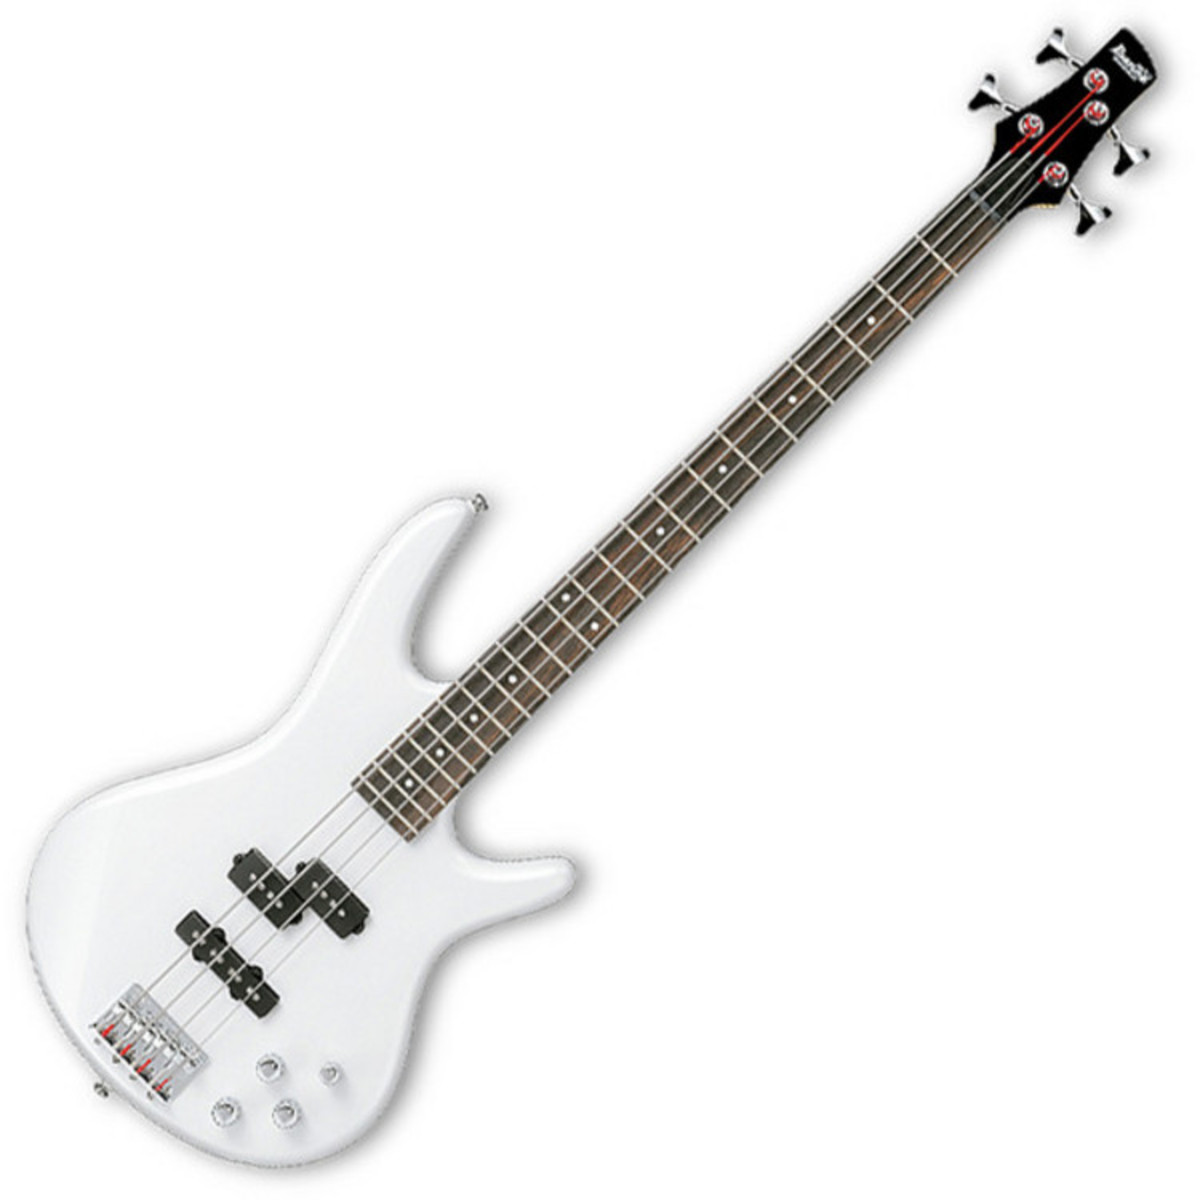 disc ibanez gsr200 gio bass guitar piano white with free gig bag at. Black Bedroom Furniture Sets. Home Design Ideas